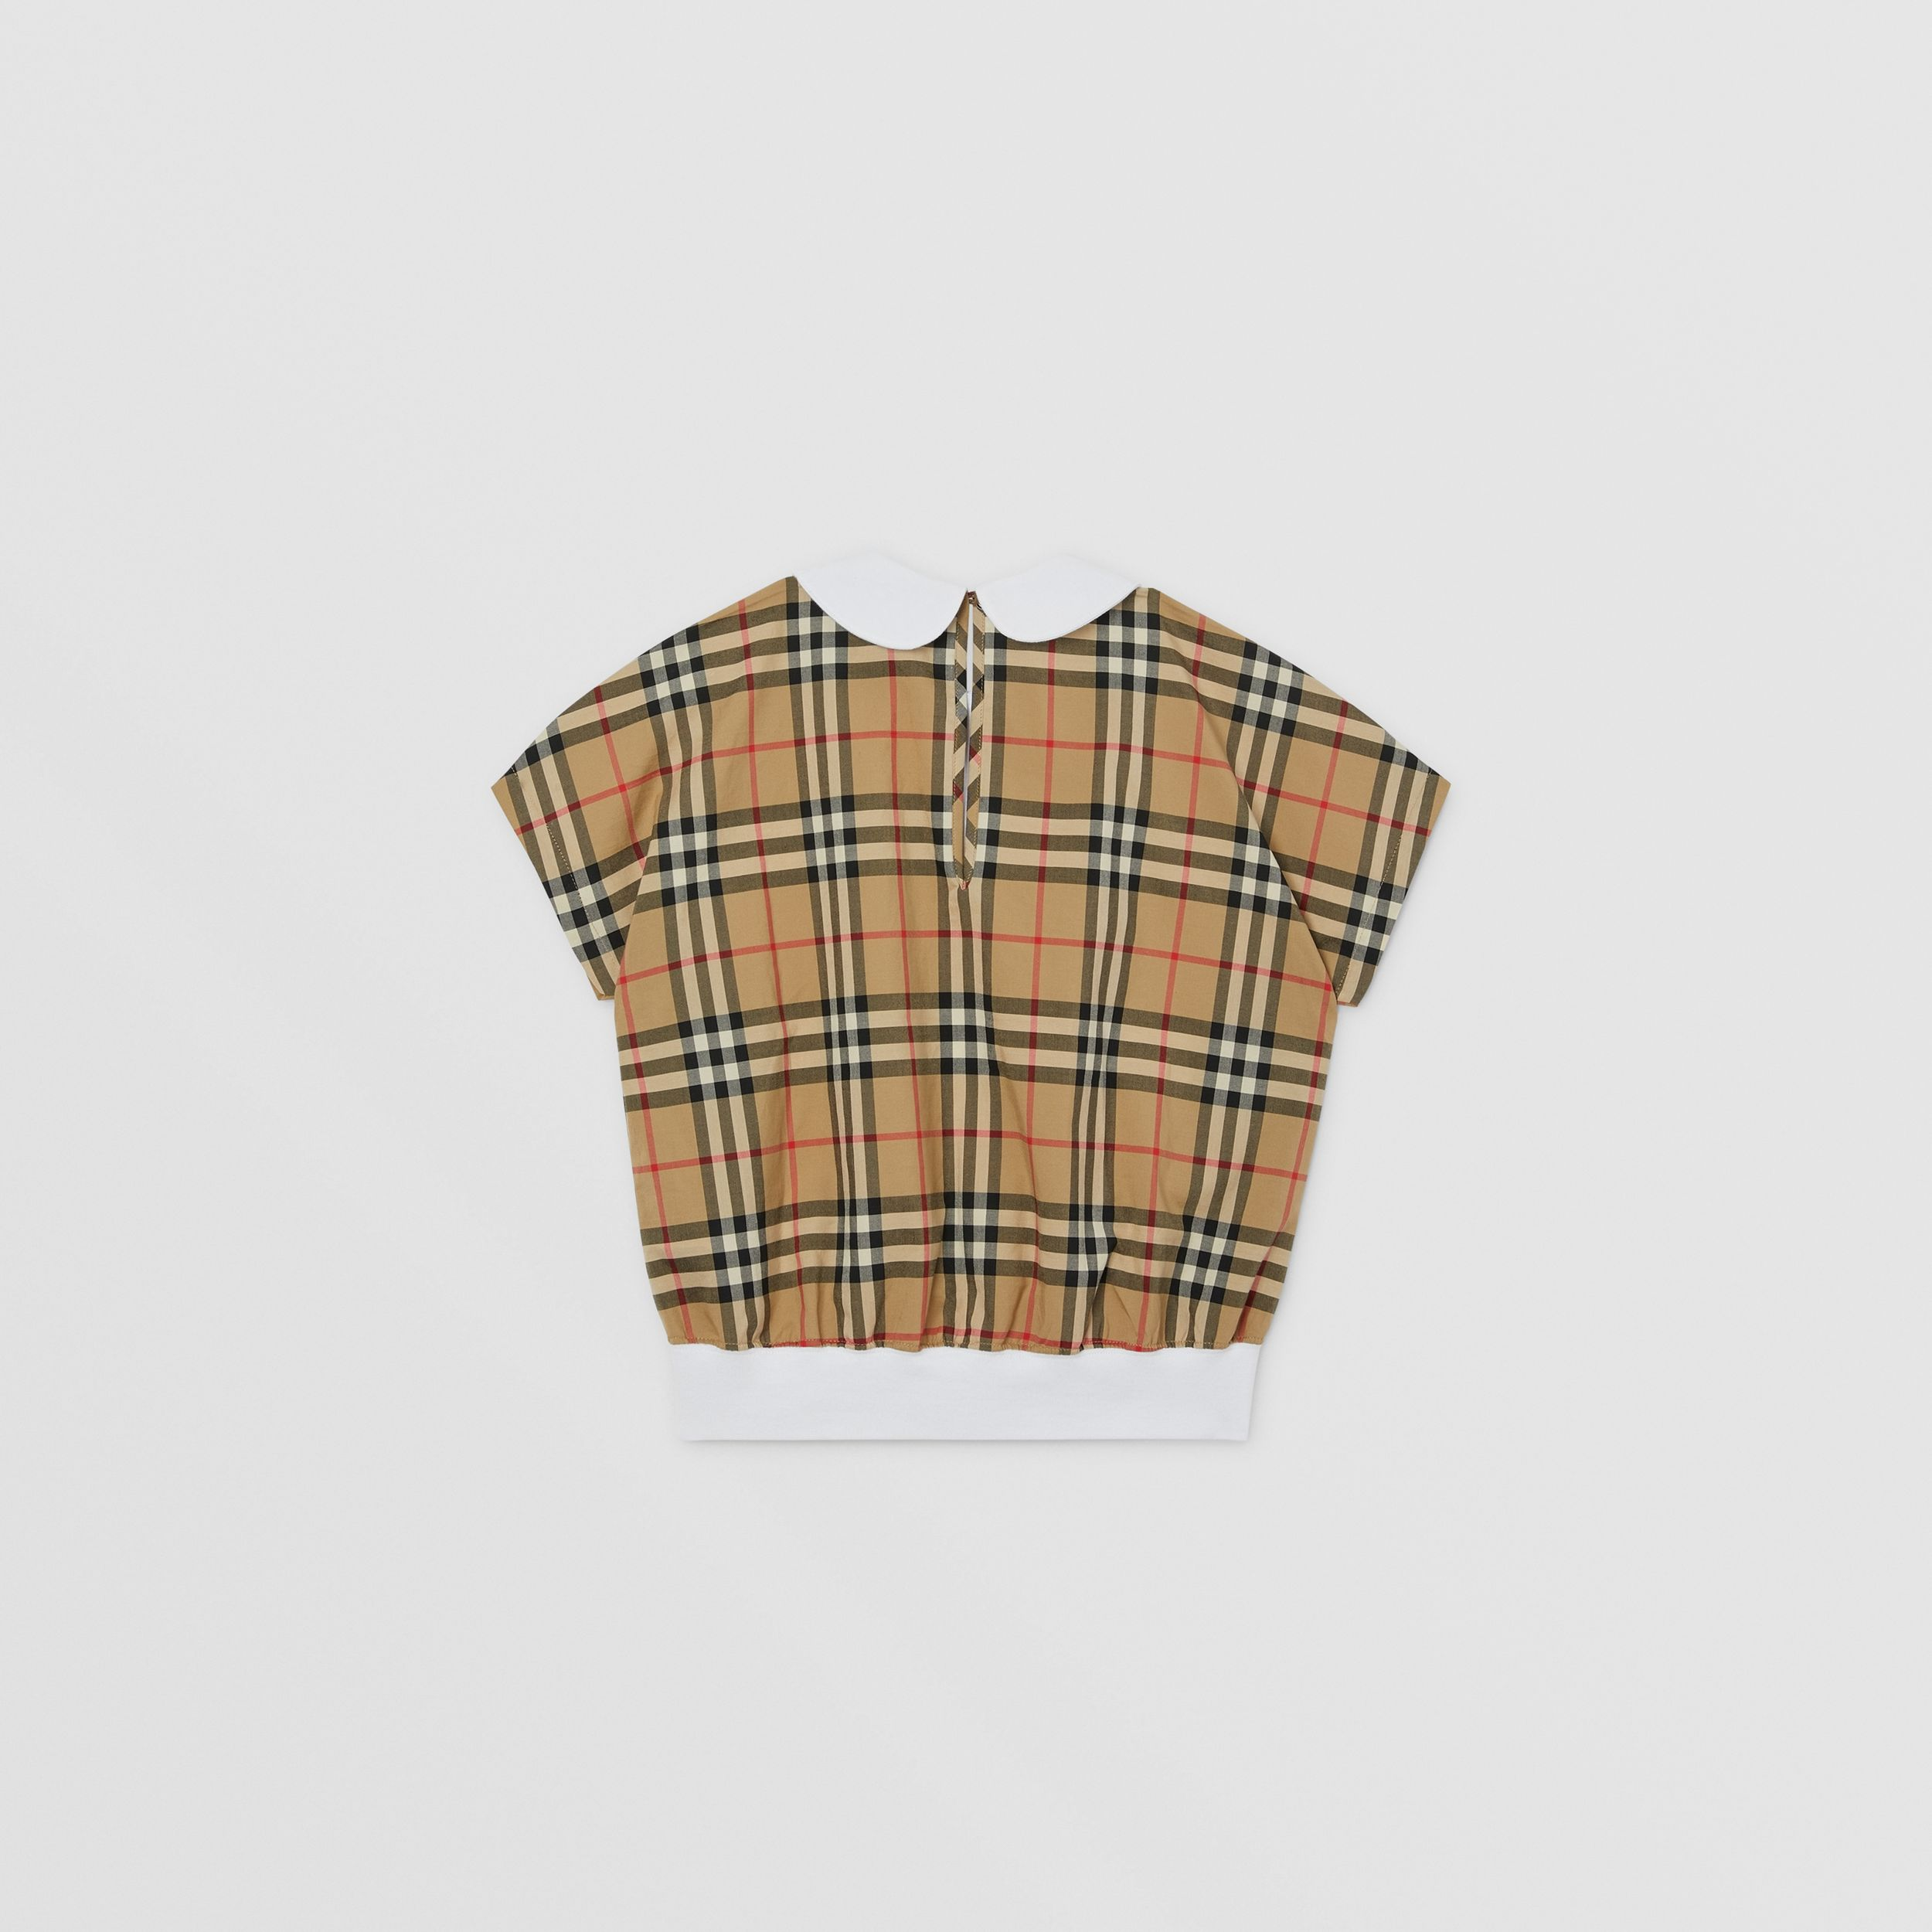 Monogram Motif Vintage Check Panel Cotton T-shirt in Archive Beige | Burberry - 4